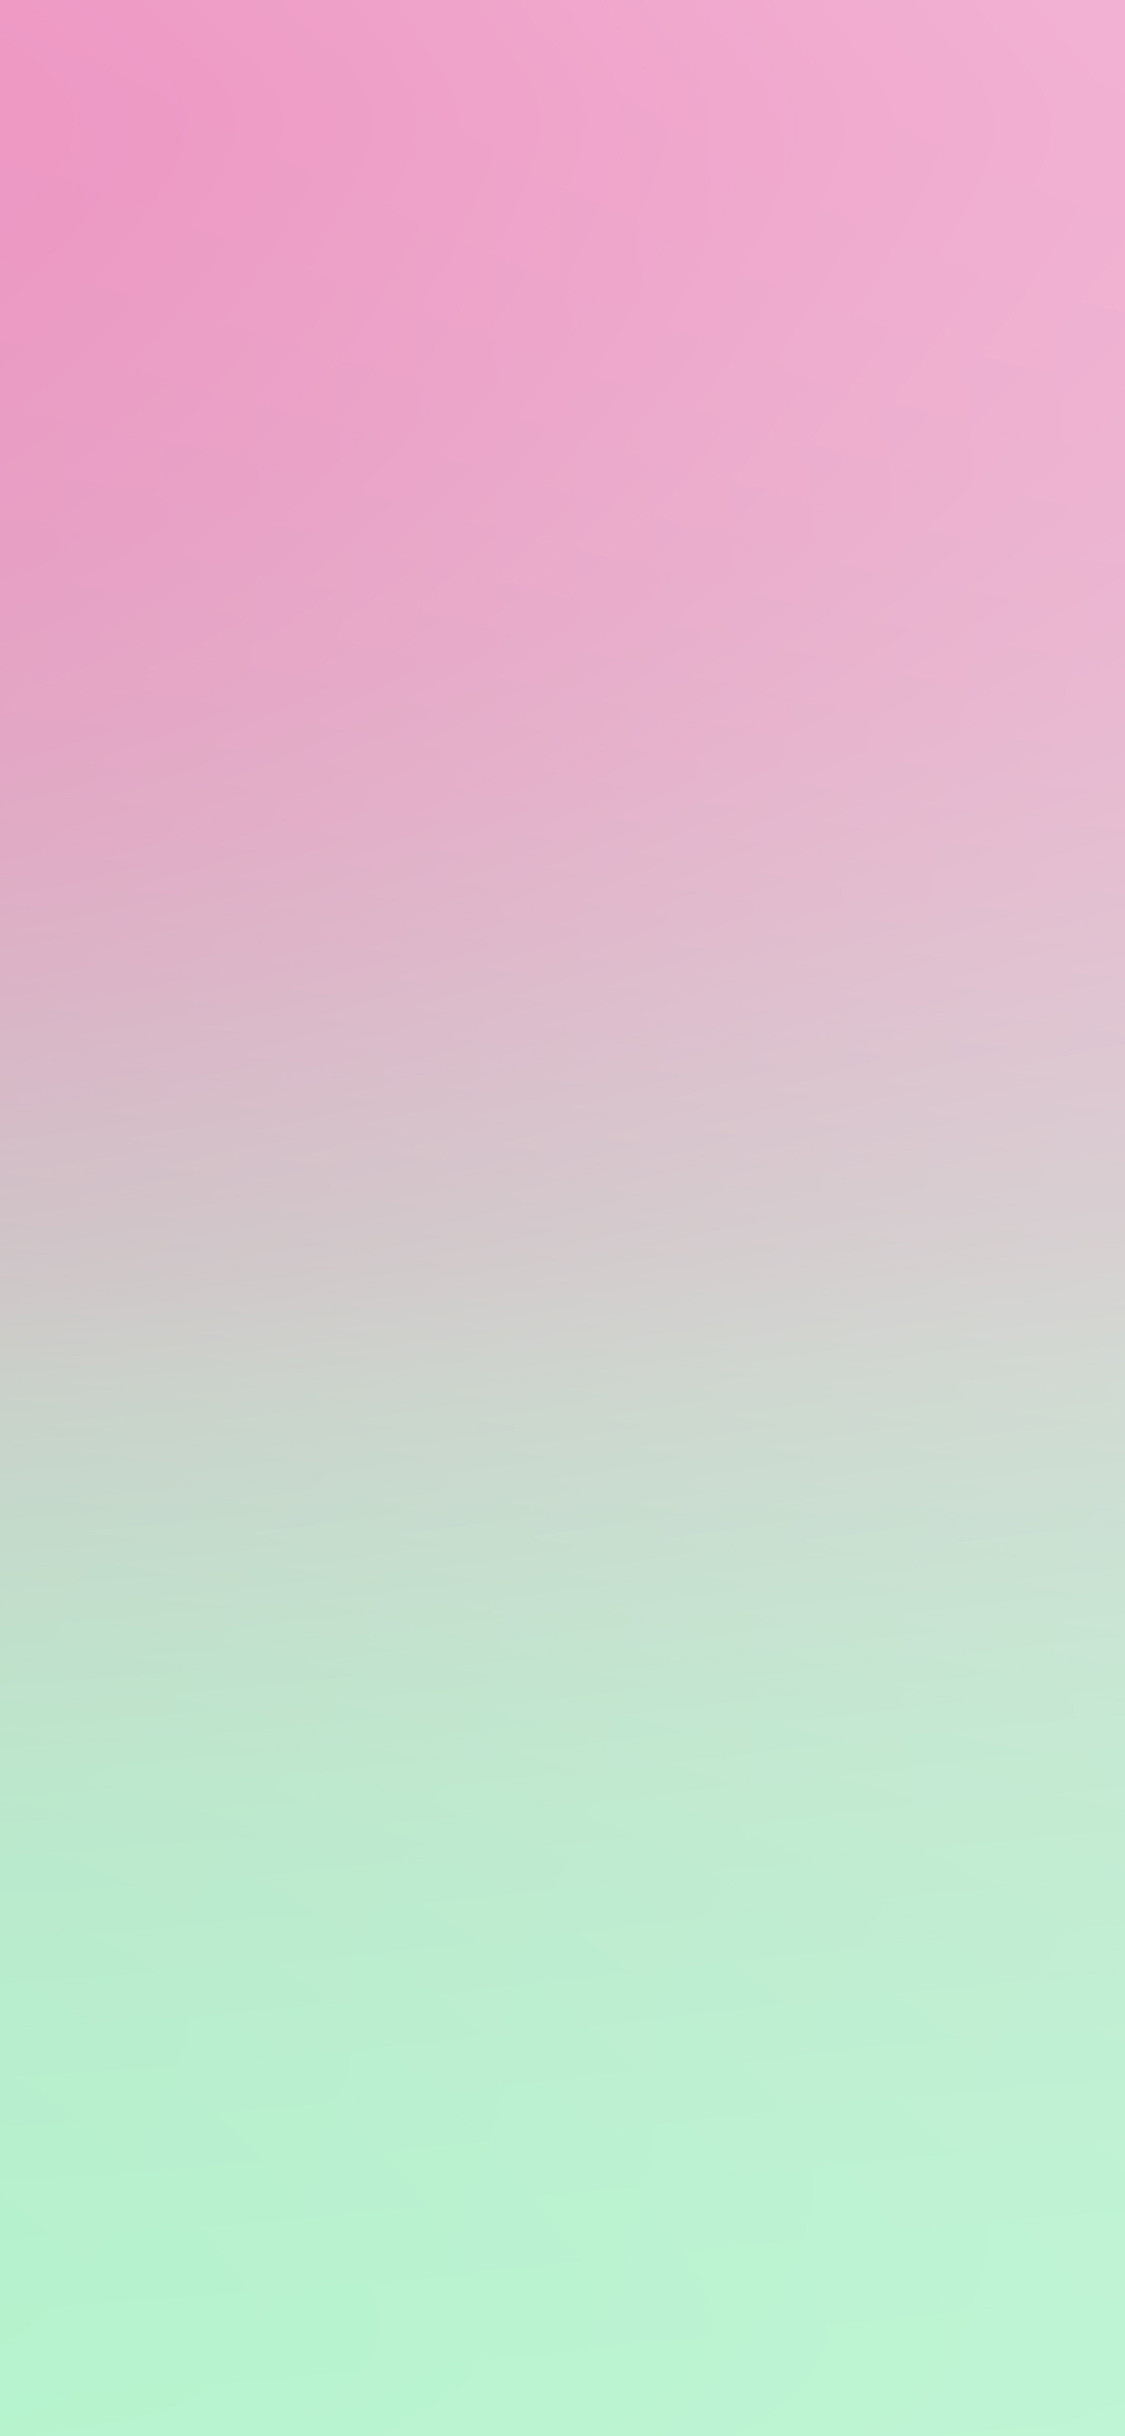 1242x2208 1899x3377 Download Wallpaper Green Ombre - blue-and-purple-ombre- wallpaper -polygon